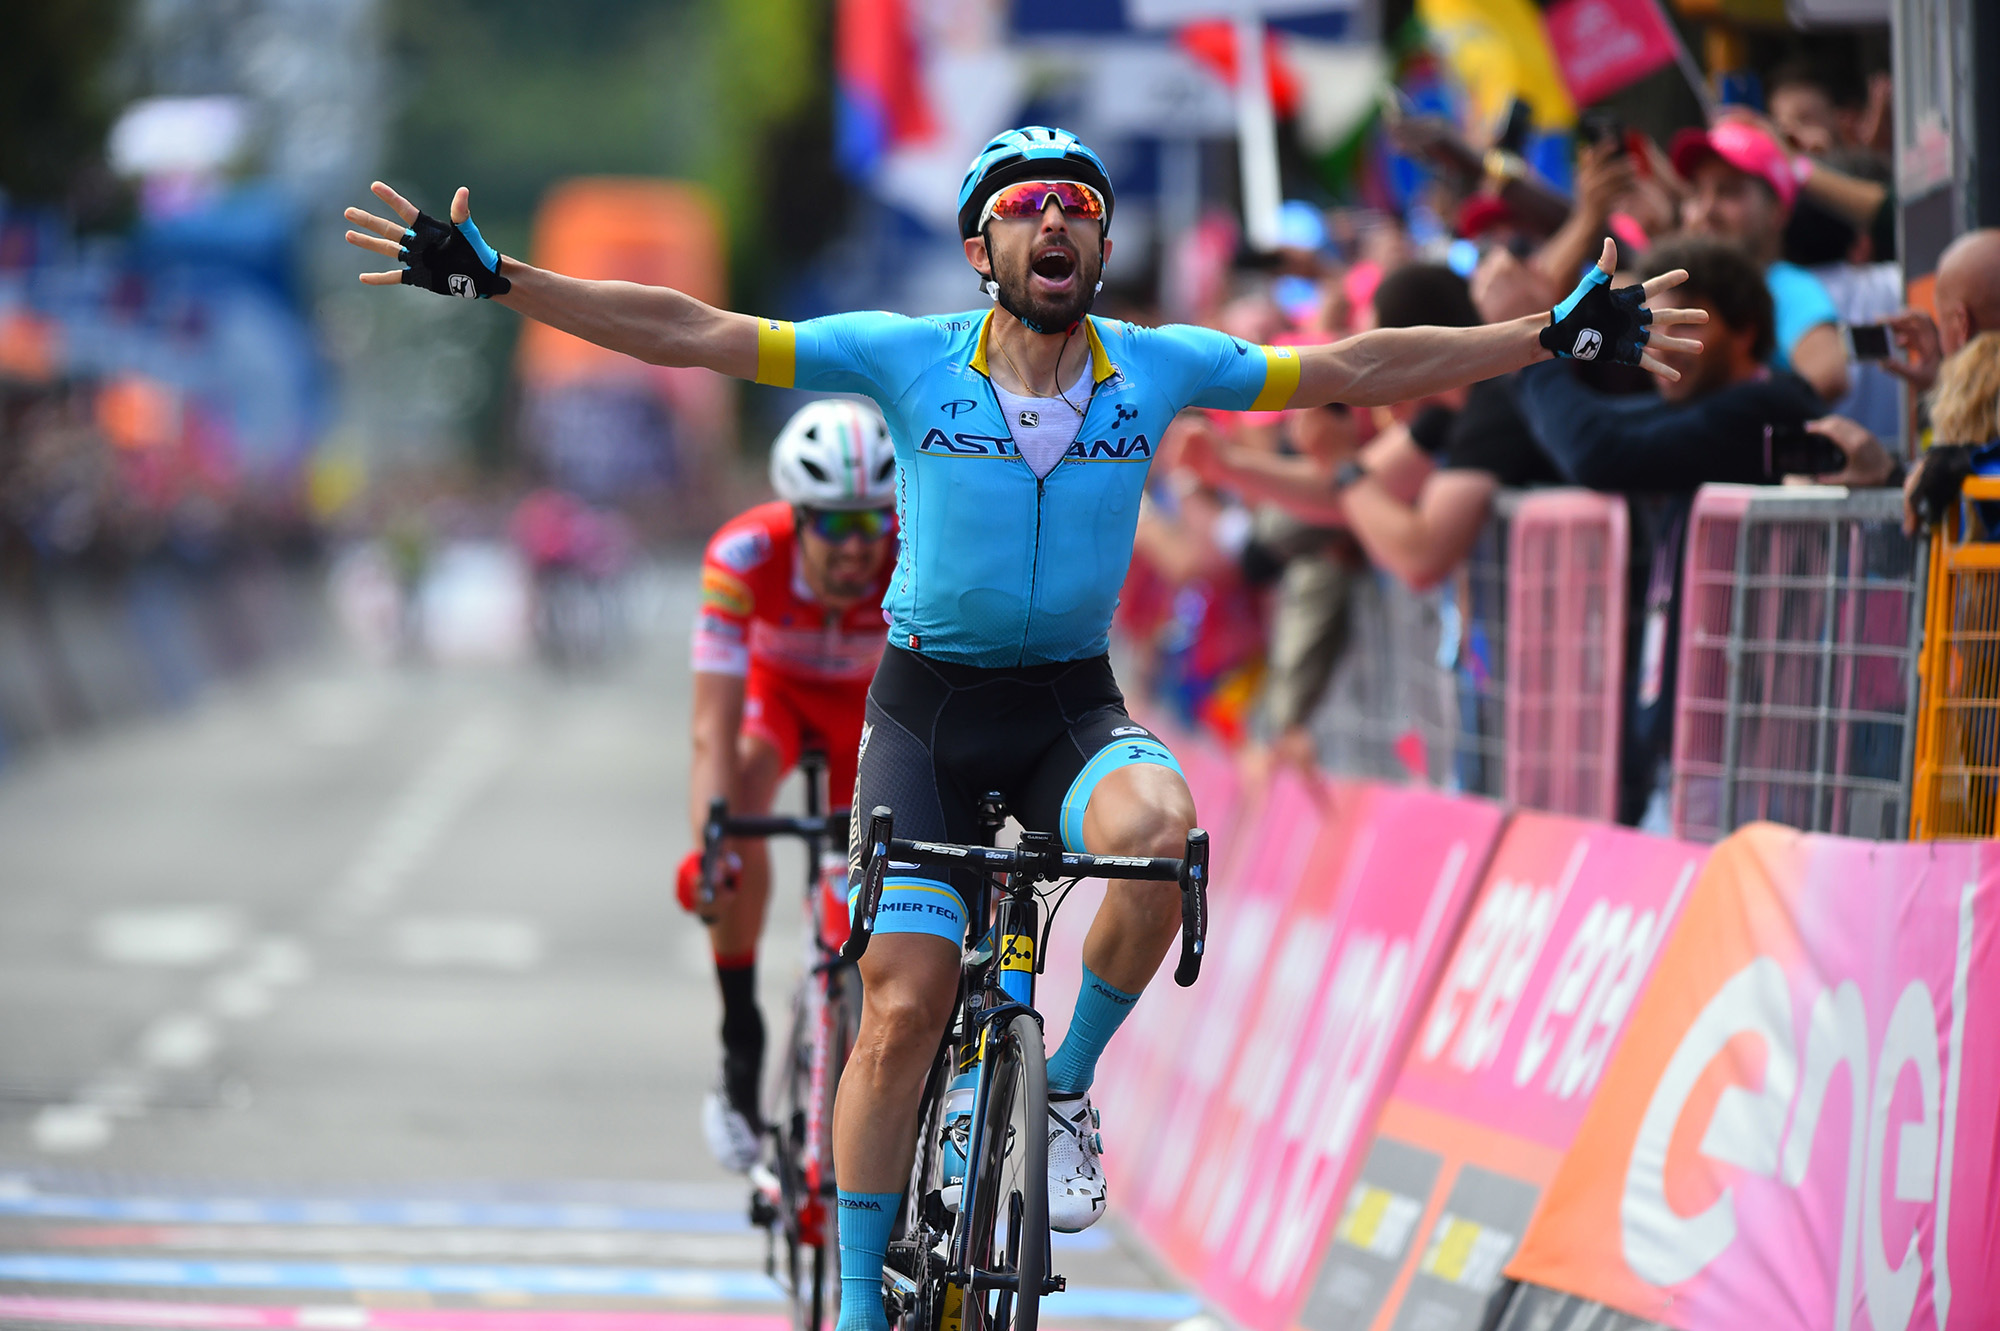 Giro d'Italia 2019 - 102nd Edition - 15th stage Ivrea - Como 232 km - 26/05/2019 - Dario Cataldo (ITA - Astana Pro Team) - photo Dario Belingheri/BettiniPhoto©2019